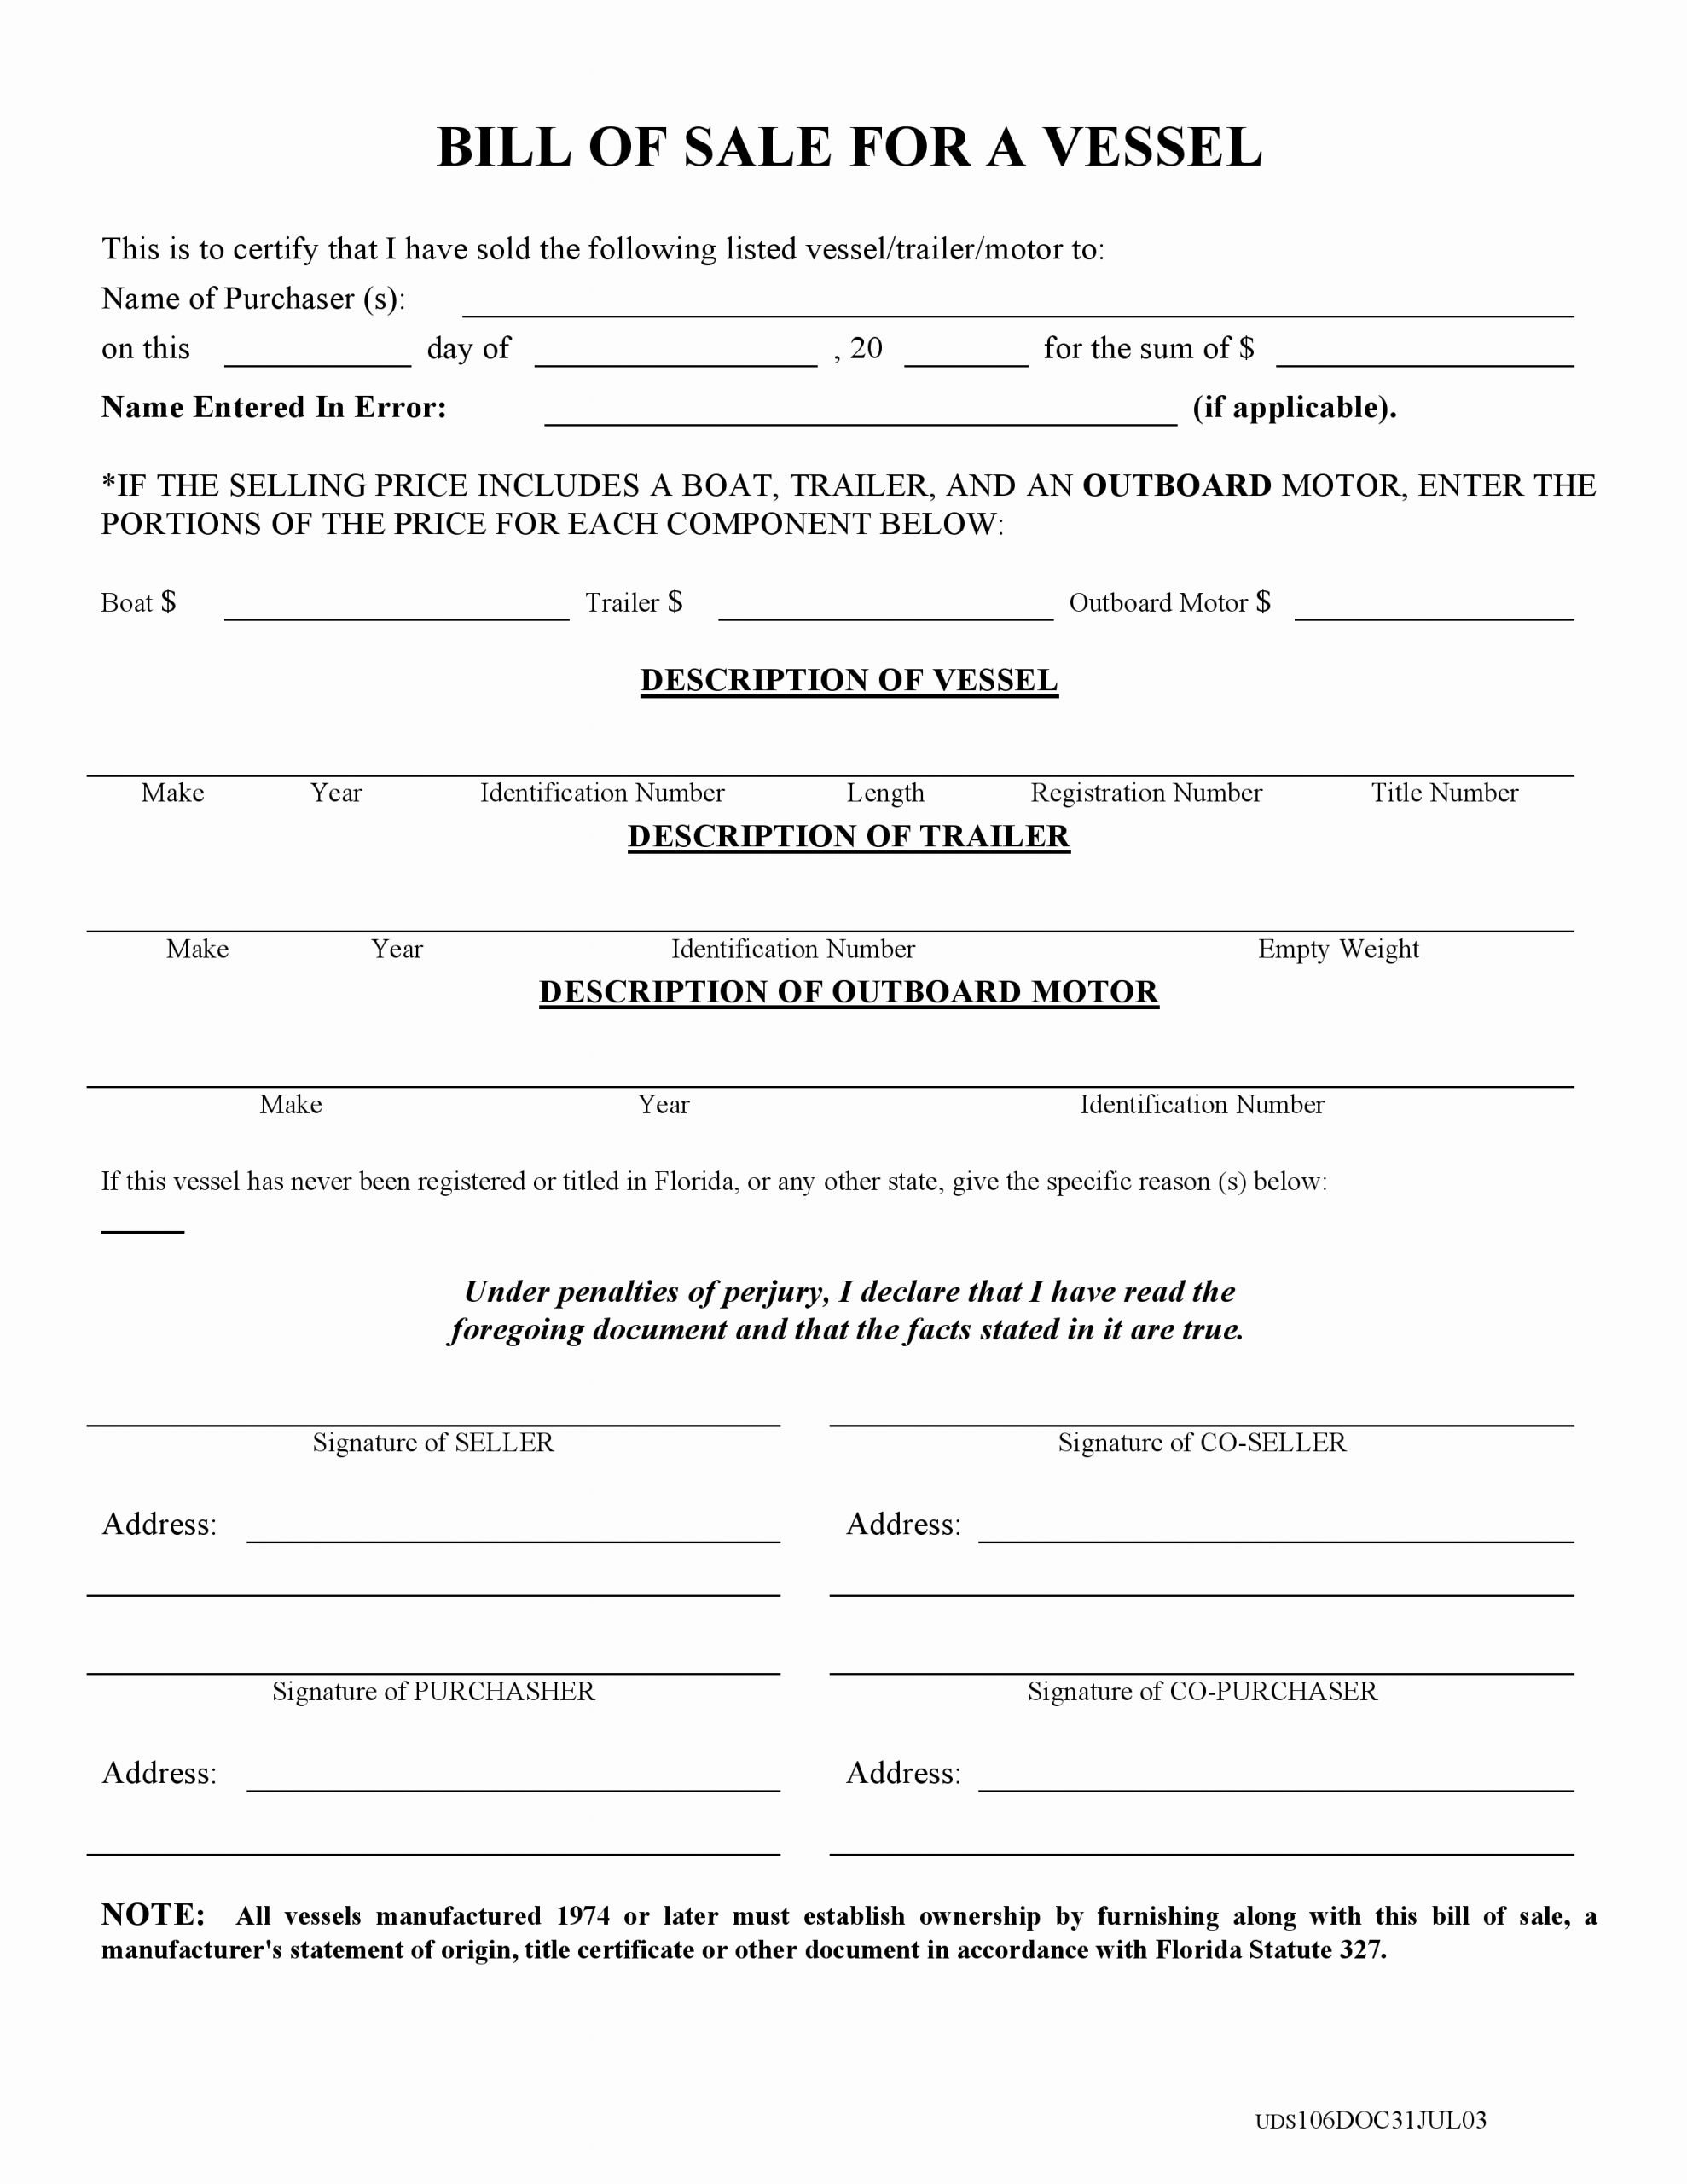 Florida Bill Of Sale Trailer Best Of Free Florida Boat Bill Of Sale form Pdf